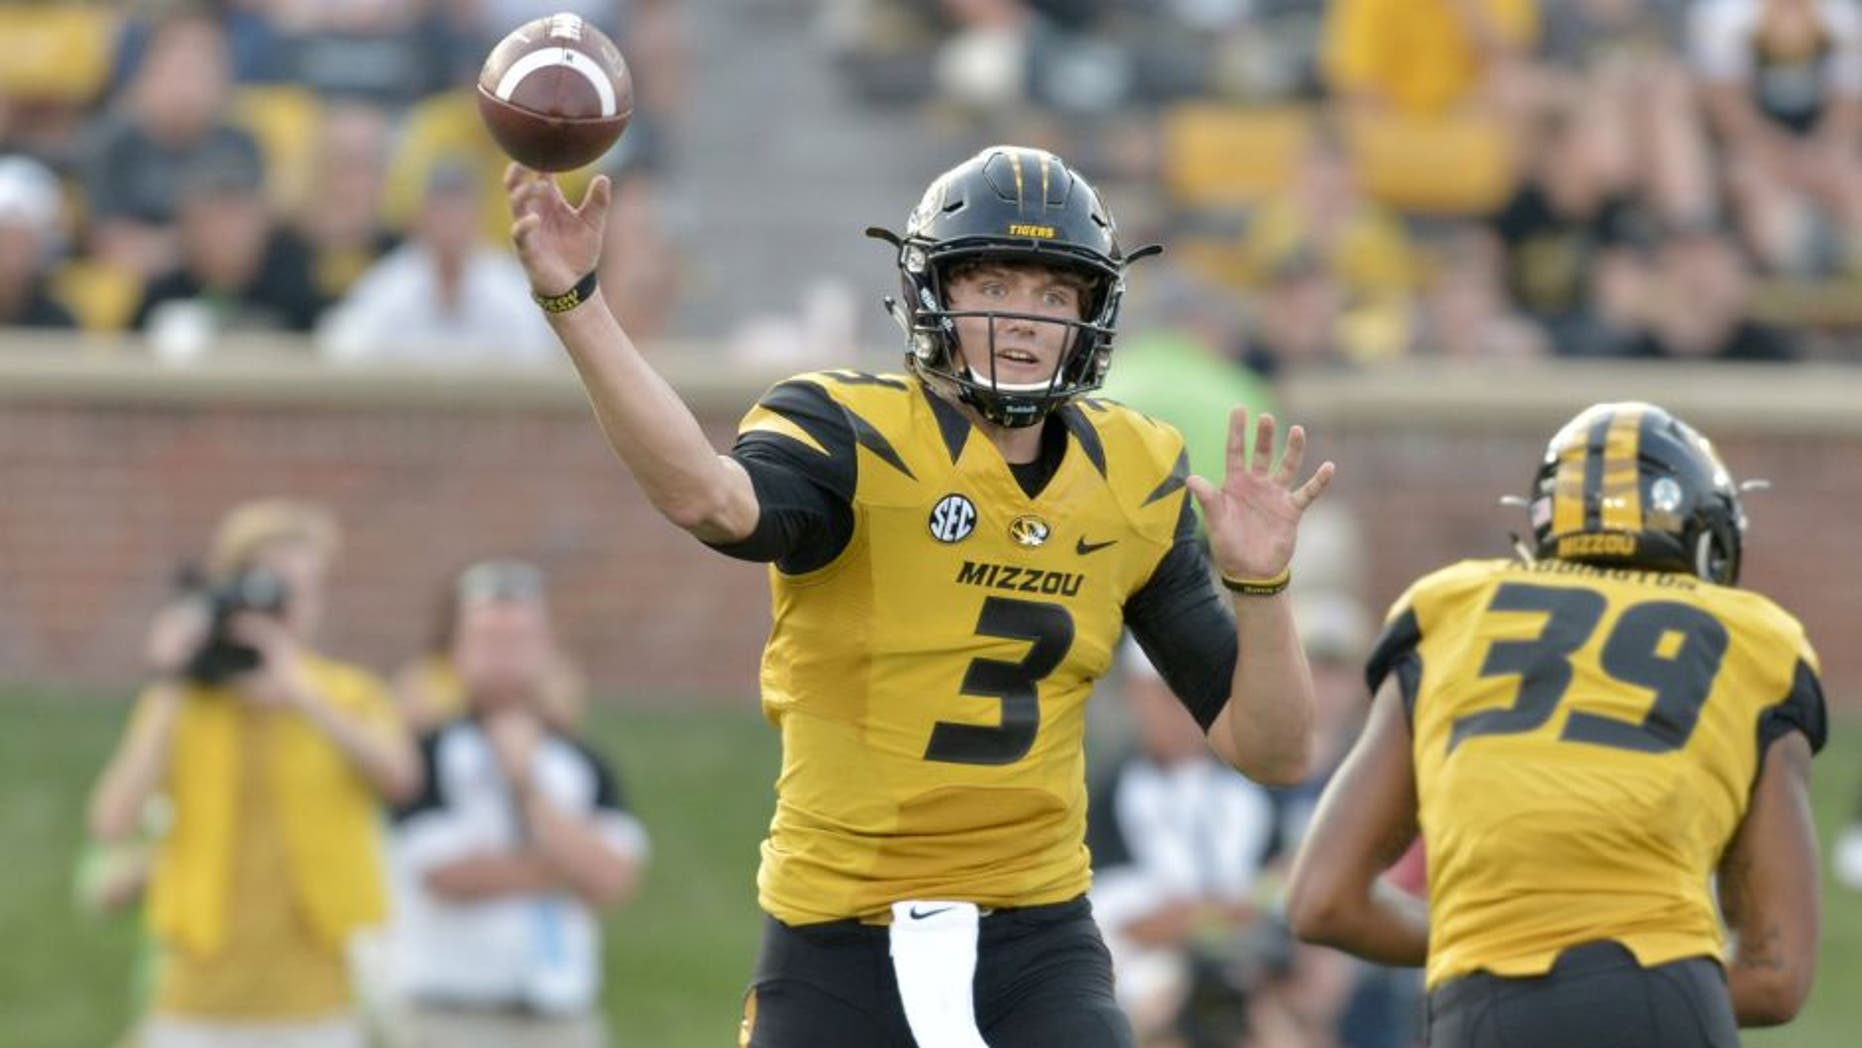 Sep 5, 2015; Columbia, MO, USA; Missouri Tigers quarterback Drew Lock (3) throws a pass during the second half against the Southeast Missouri State Redhawks at Faurot Field. Missouri won 34-3. Mandatory Credit: Denny Medley-USA TODAY Sports